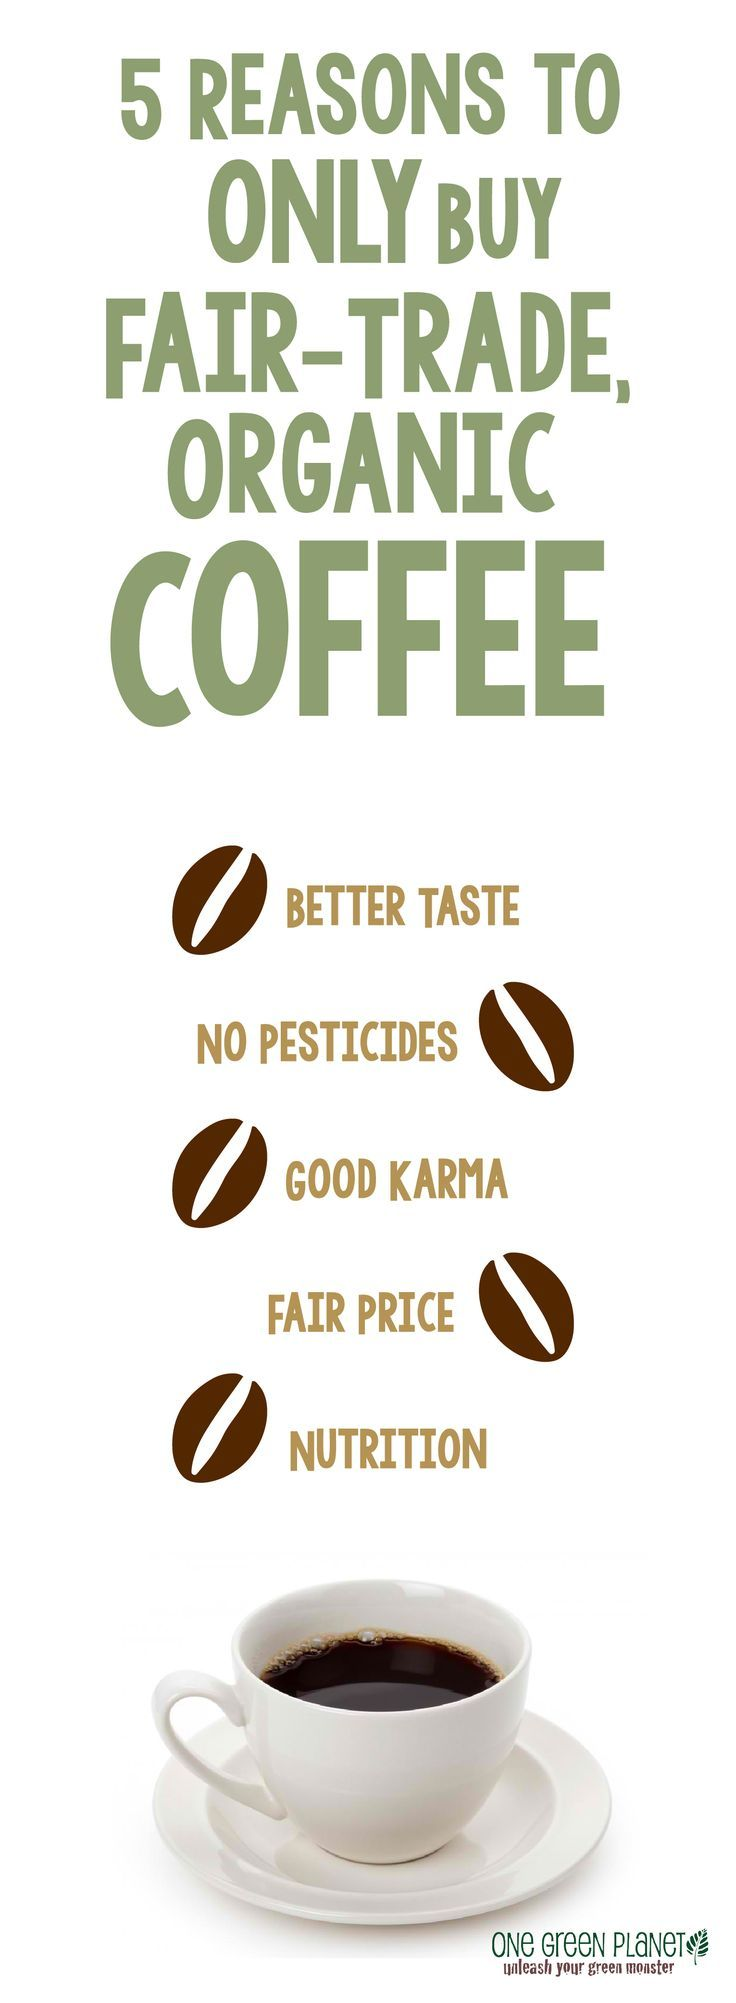 5 reasons to ONLY buy organic fair-trade coffee...ALSO, you will need some coffee for all those mugs!